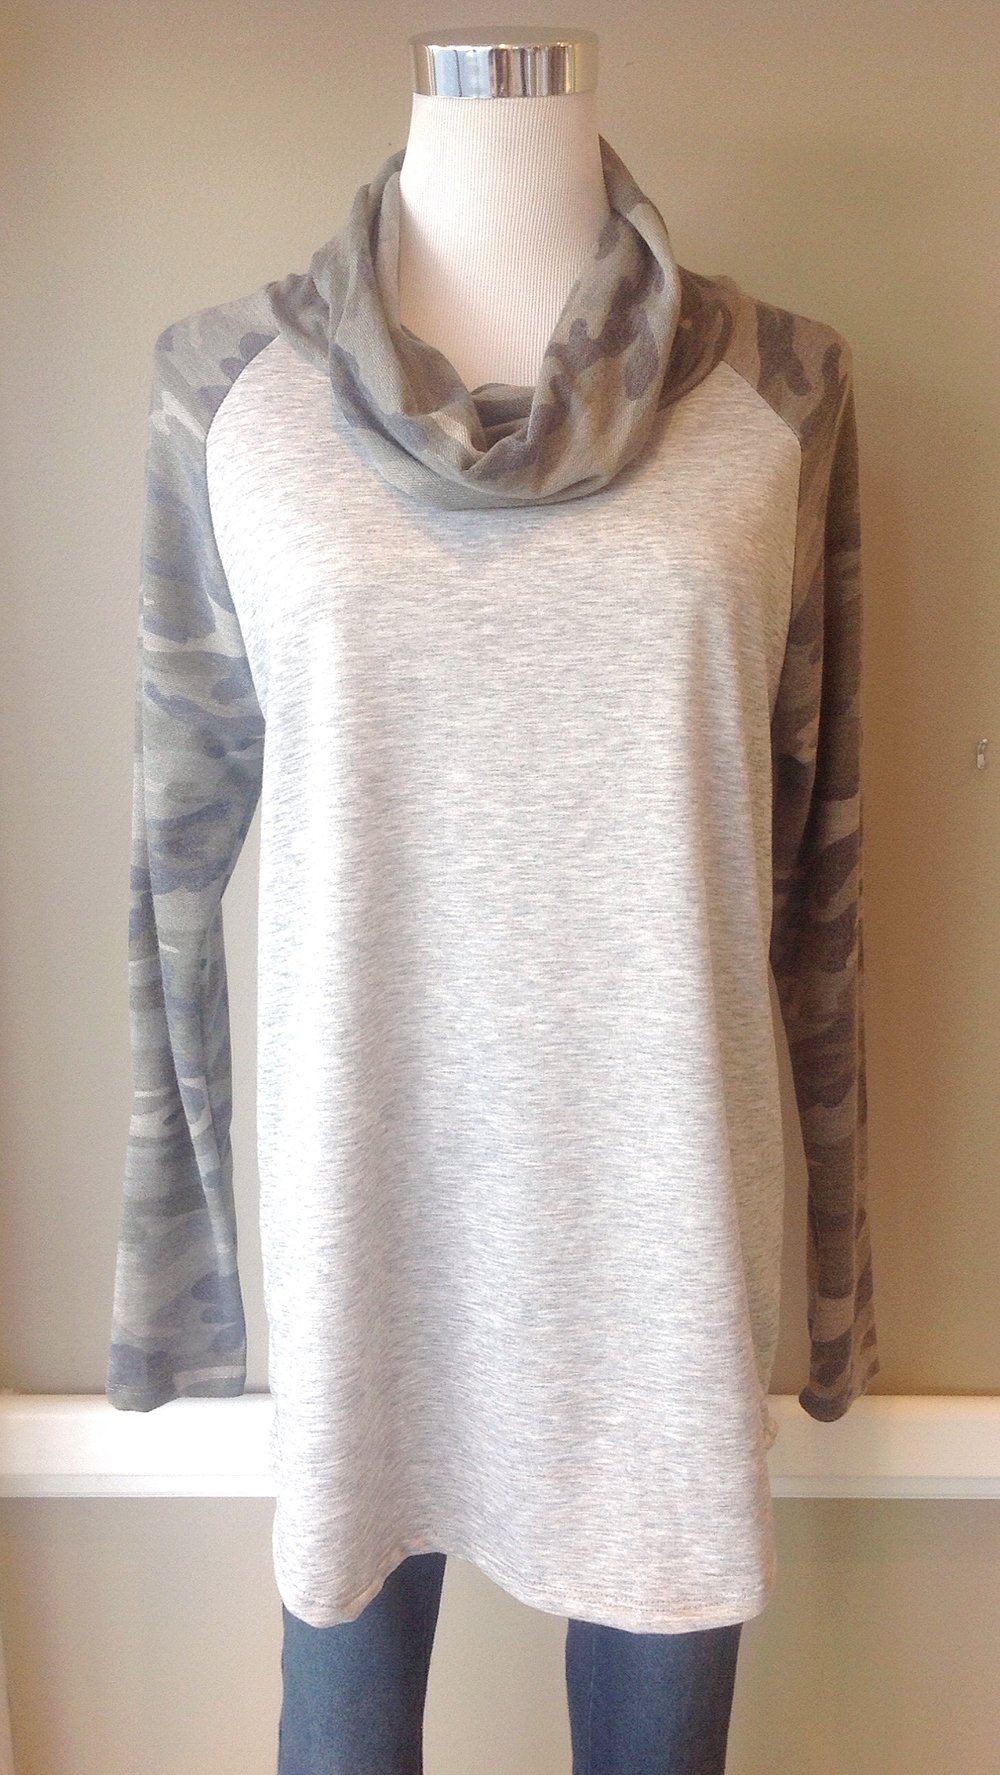 Camo print cowl neck top, $35